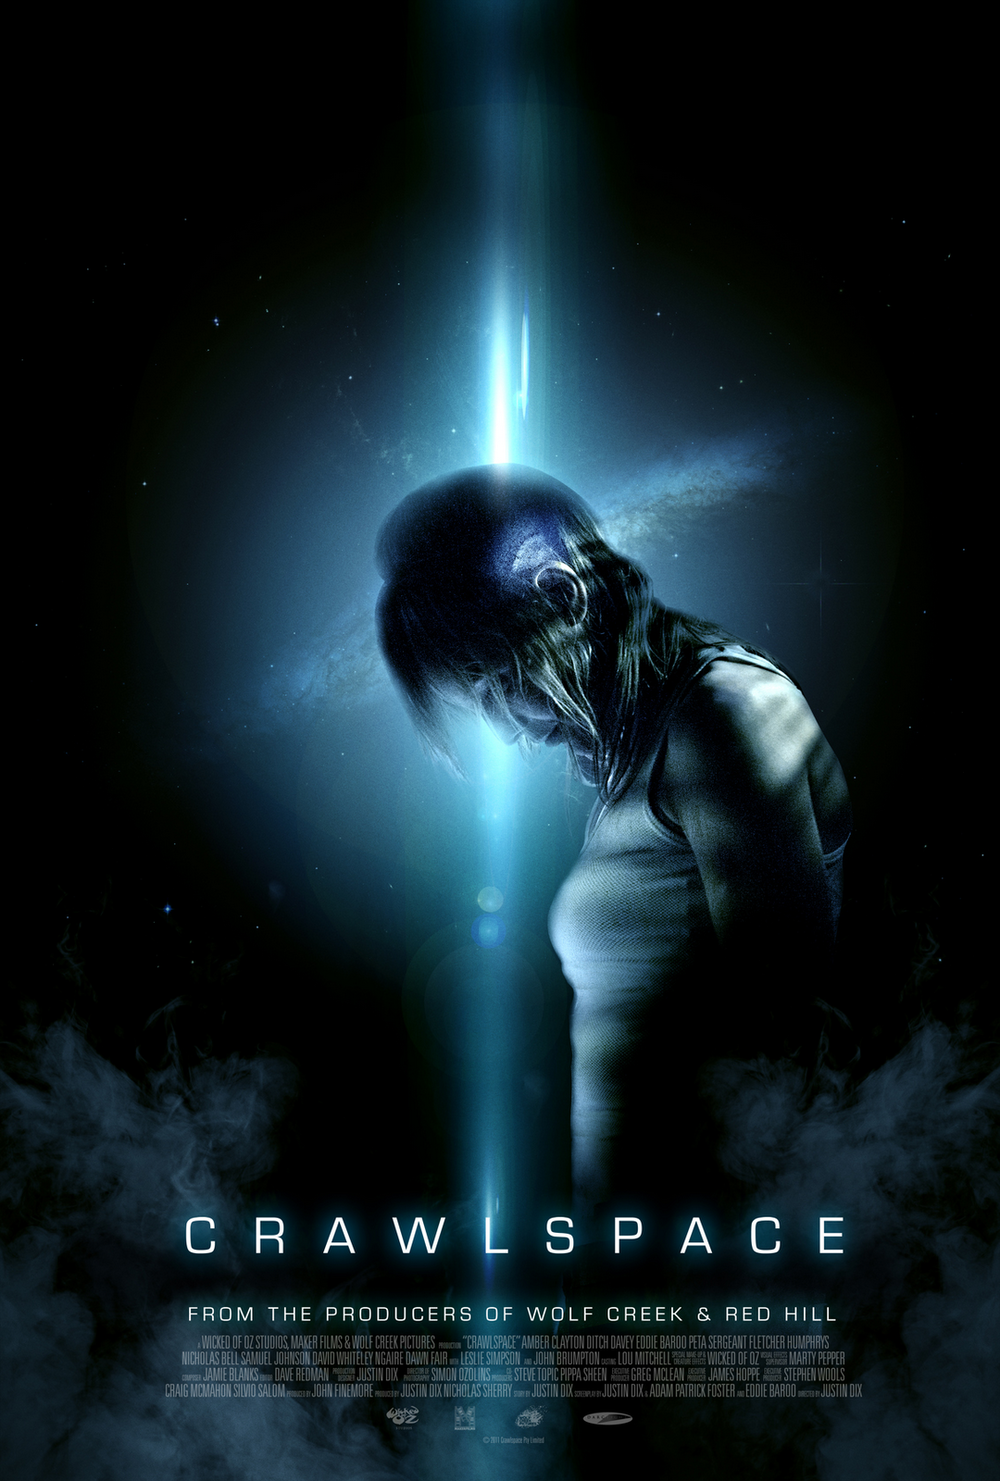 crawlspace_poster01.png